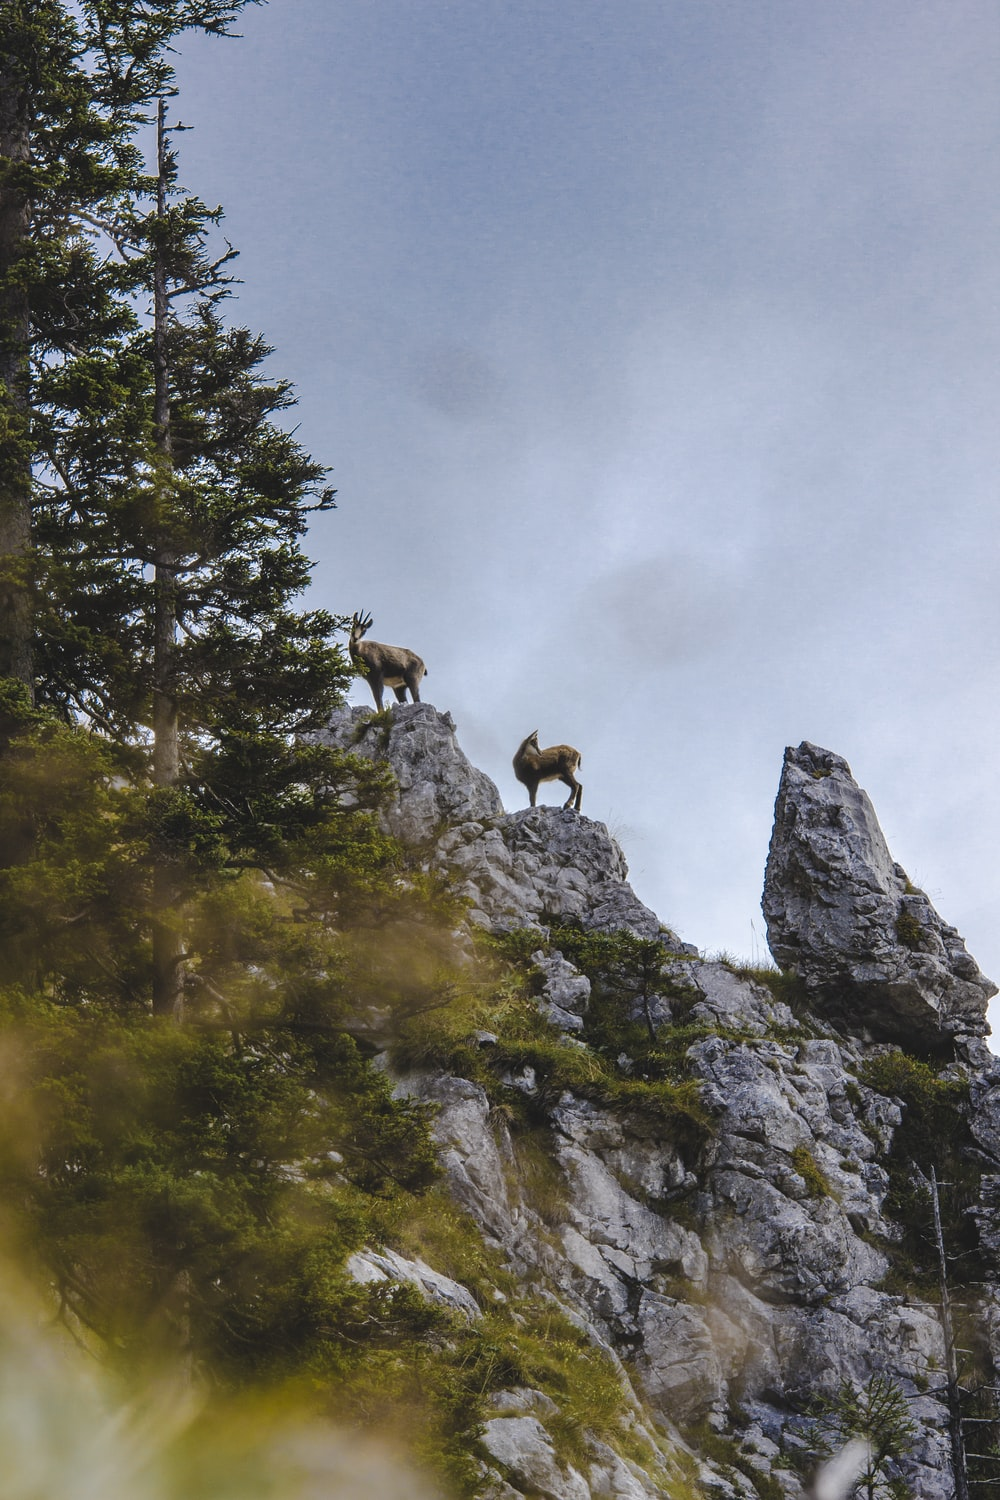 brown mountain goats on top of rocky mountain under gray sky